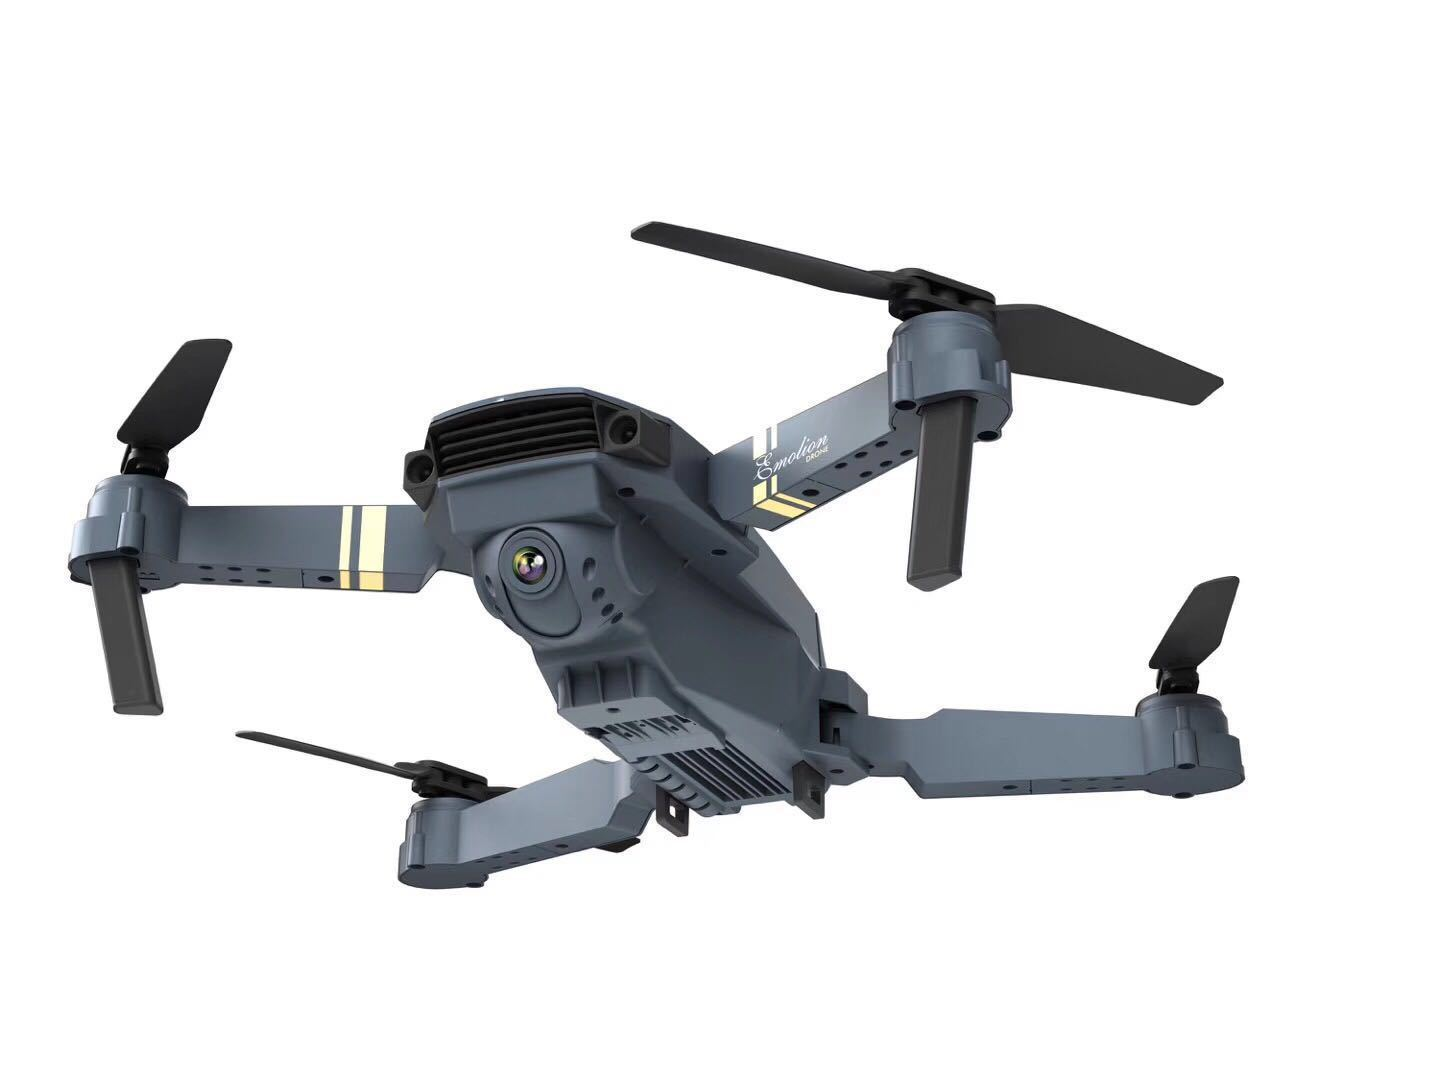 Limited Edition Drones With Camera HD With Foldable Arm